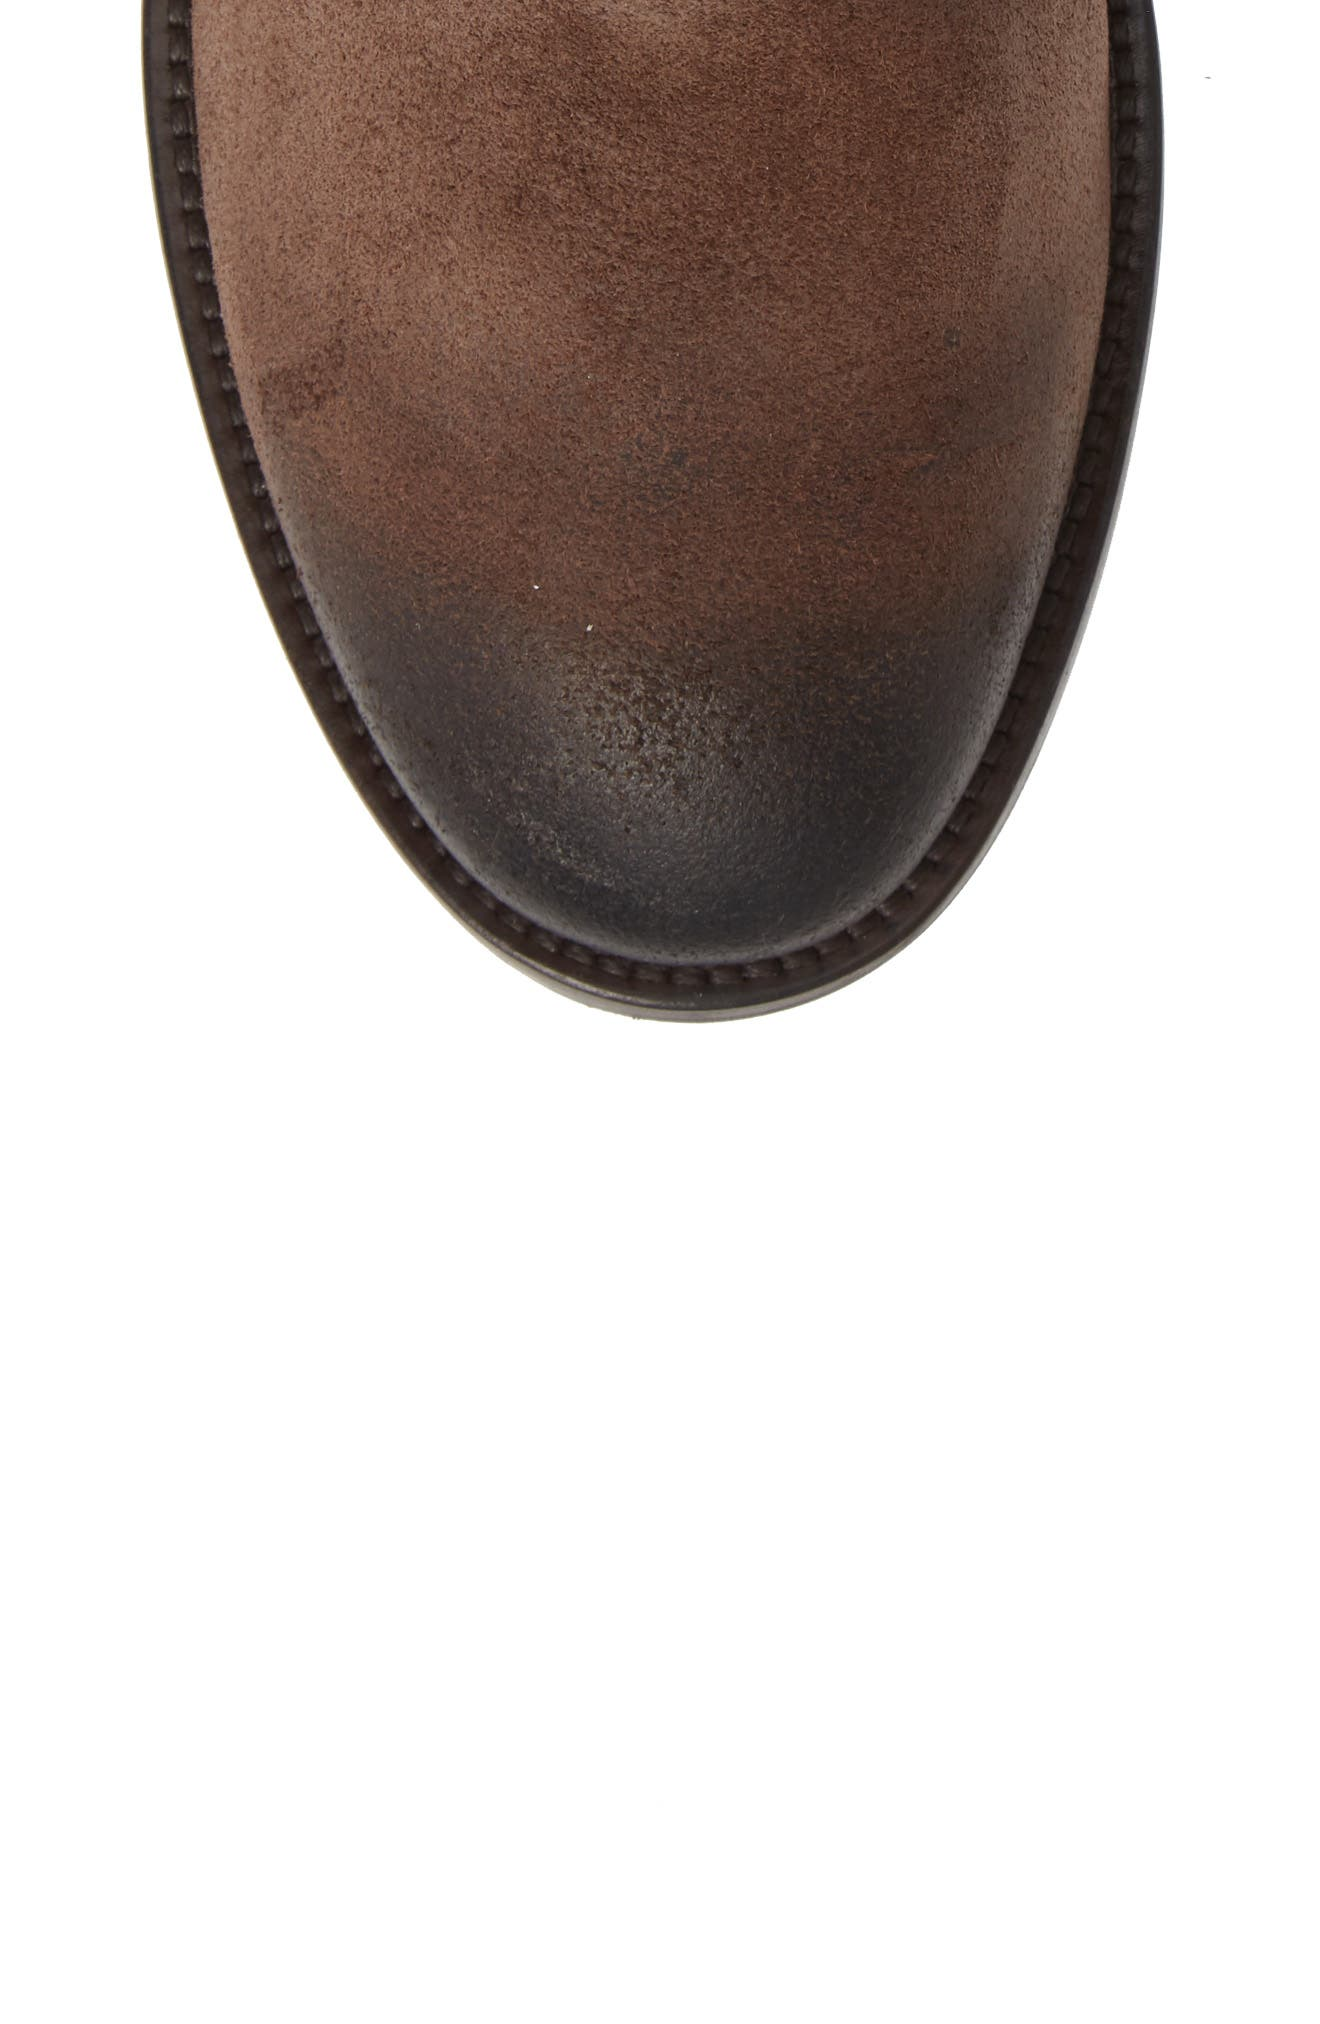 Athens Plain Toe Boot,                             Alternate thumbnail 5, color,                             TMORO SUEDE/ LEATHER